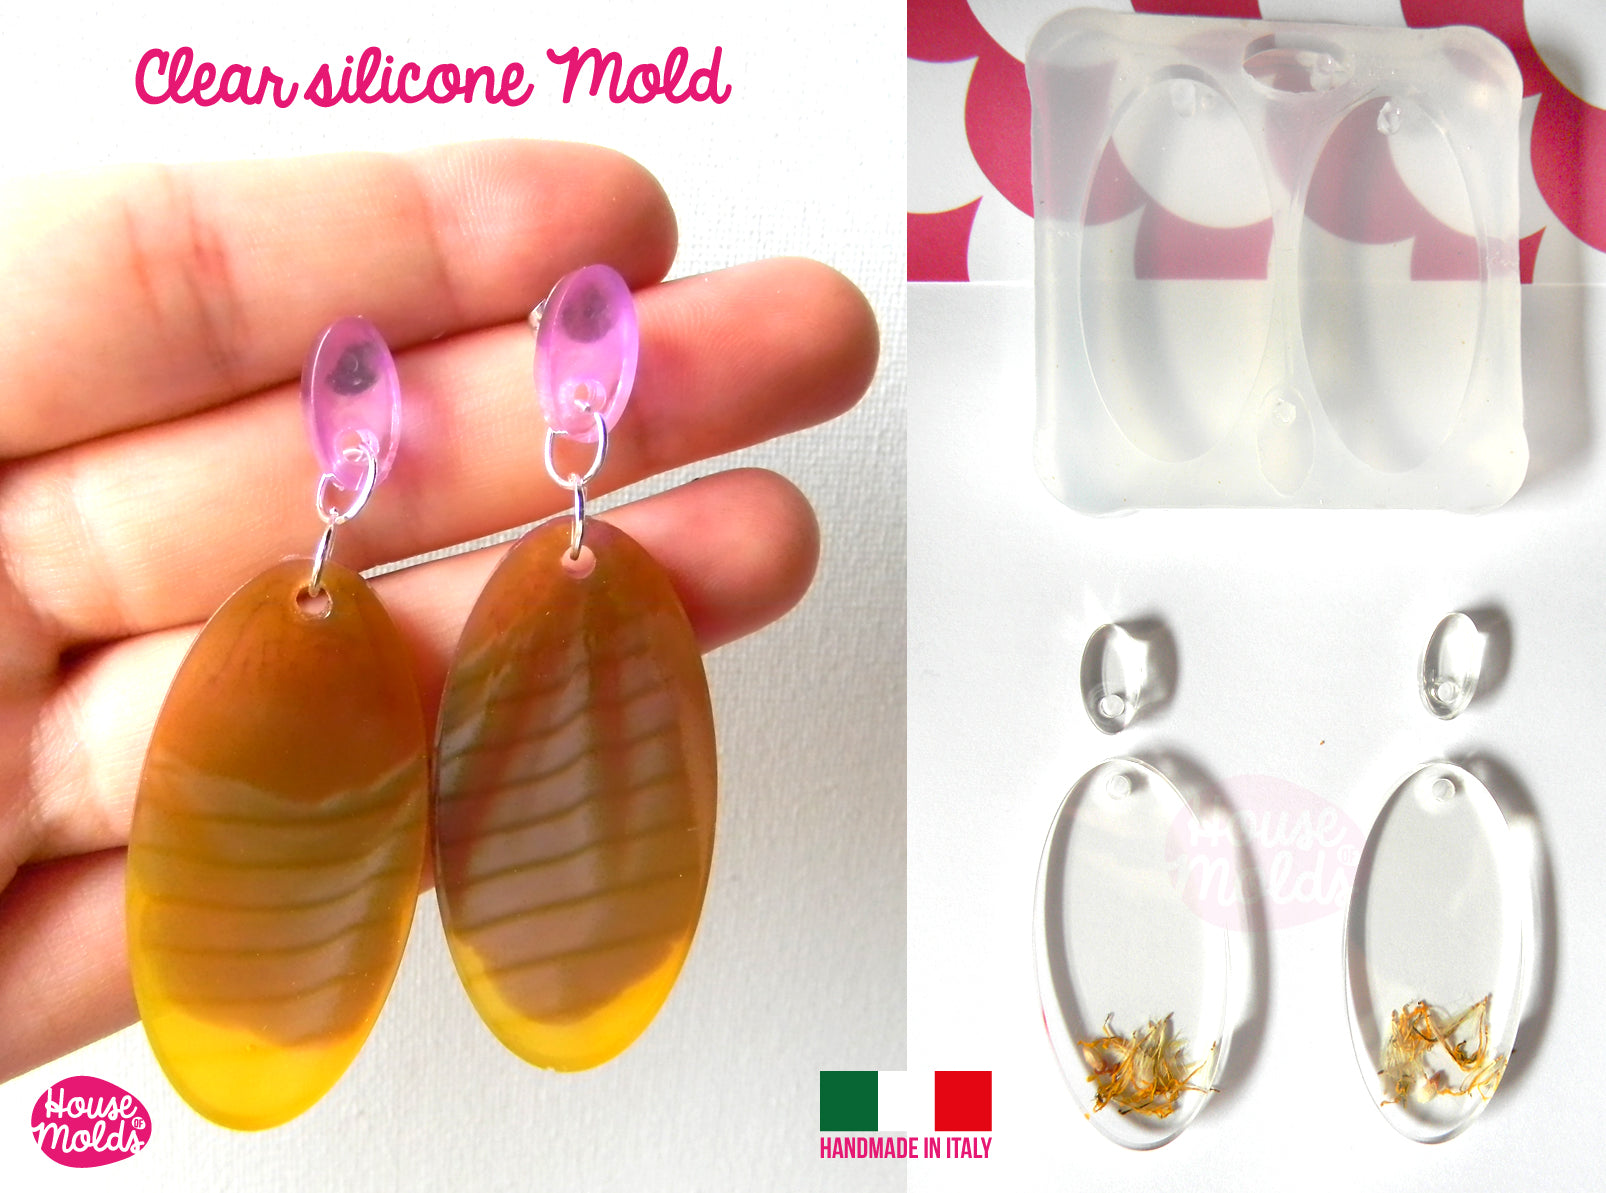 premade hole on top Clear  Silicone Mold Oval Flat Earring Set with 4 cavityes perfect for any resin creations!